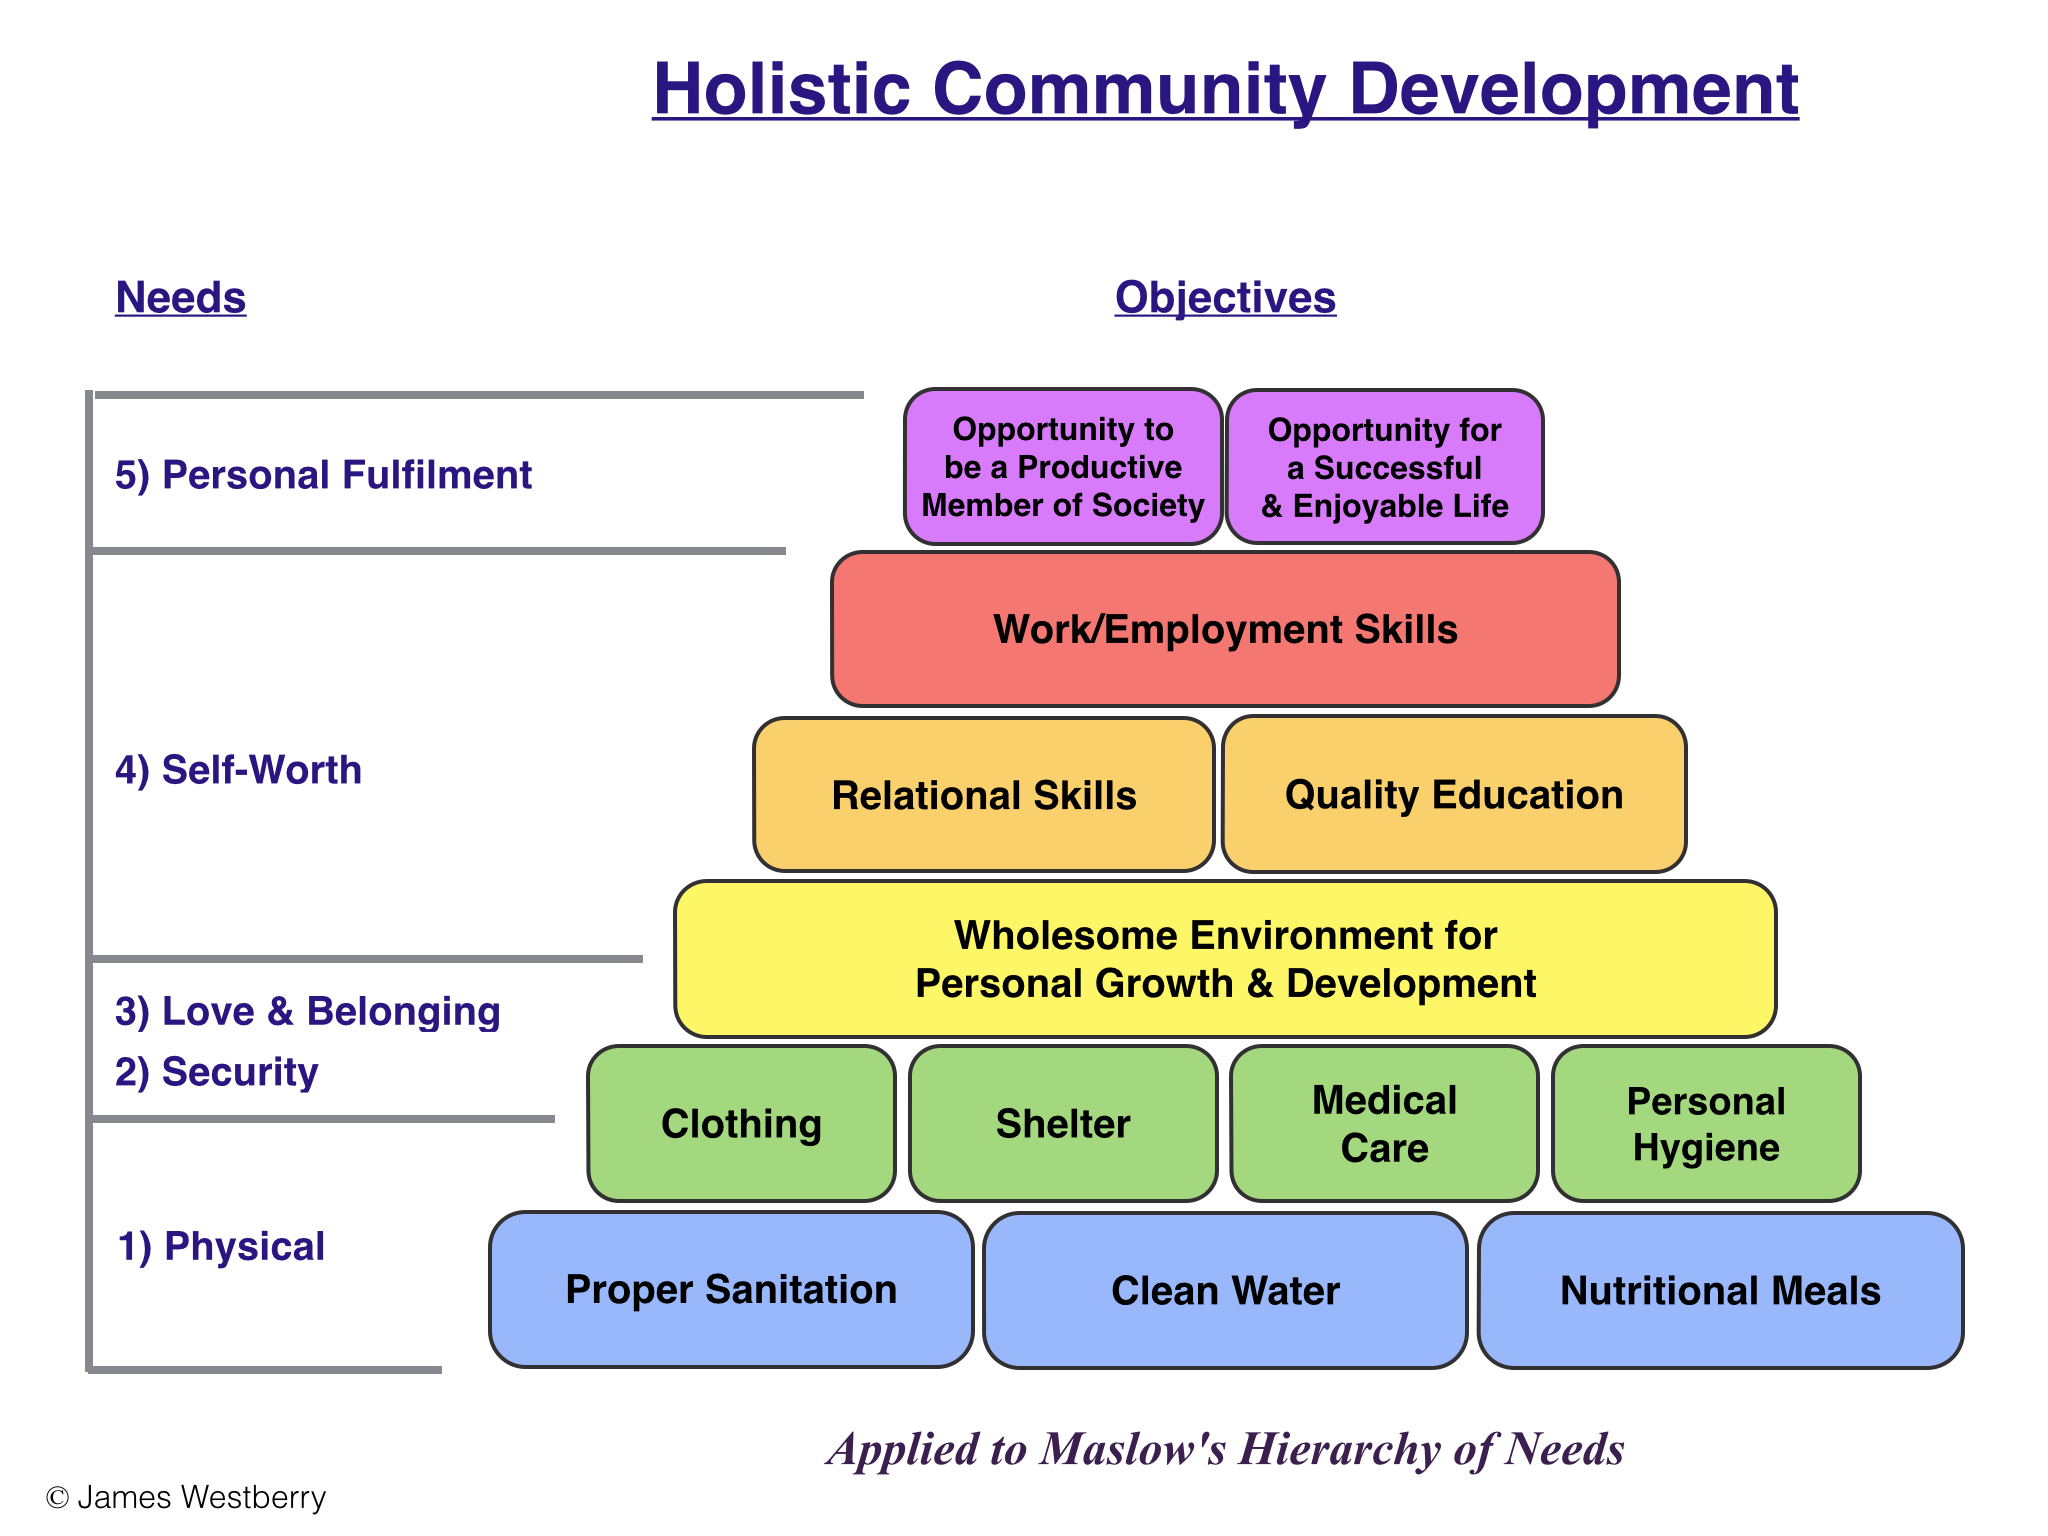 Community Improvement Services: What are they and what can they do?